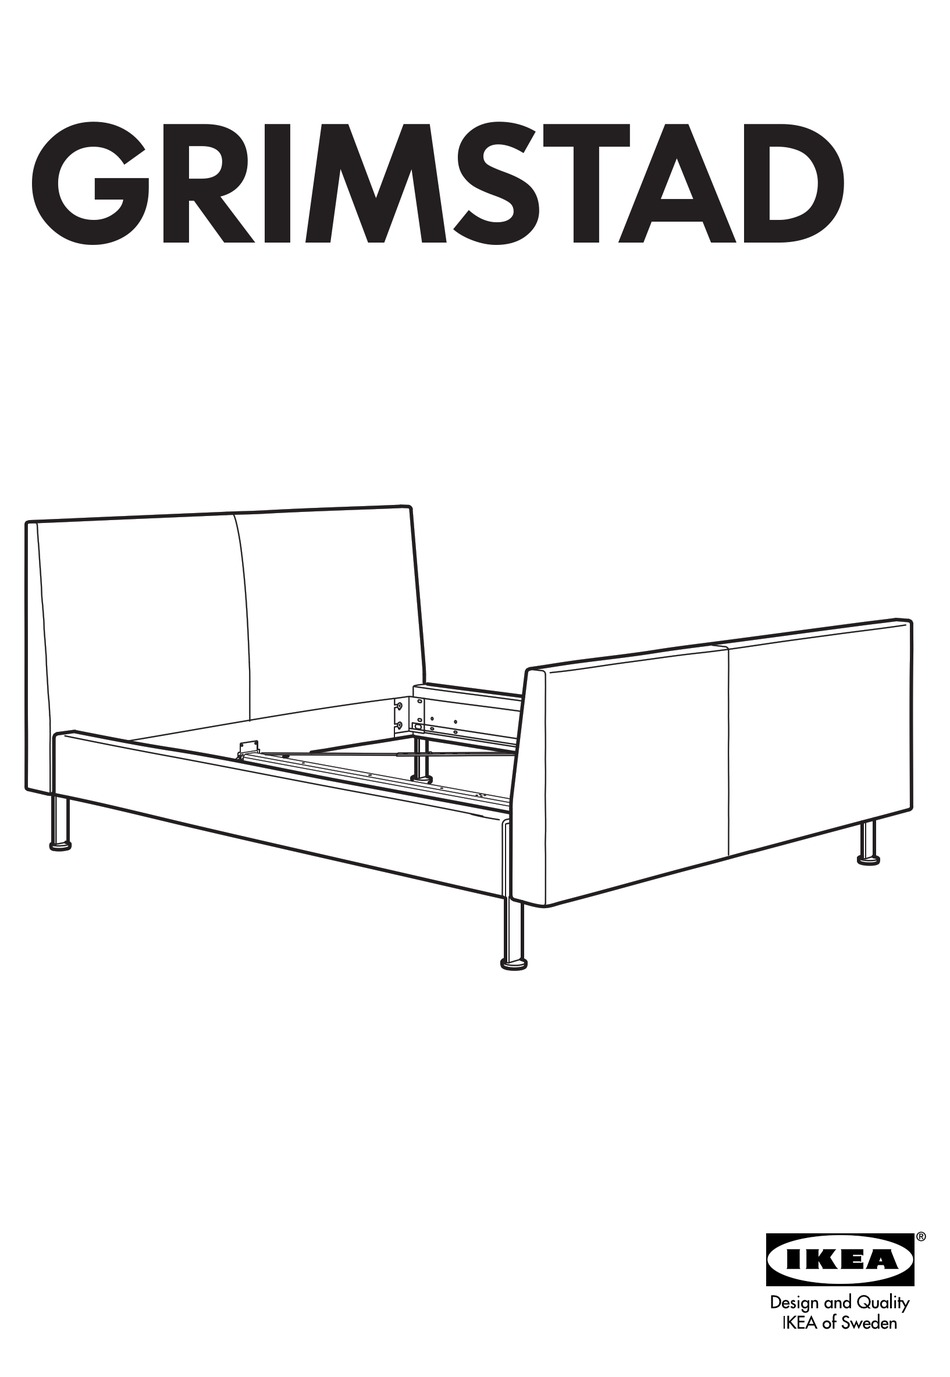 IKEA GRIMSTAD BED FRAME FULL & QUEEN INSTRUCTIONS MANUAL